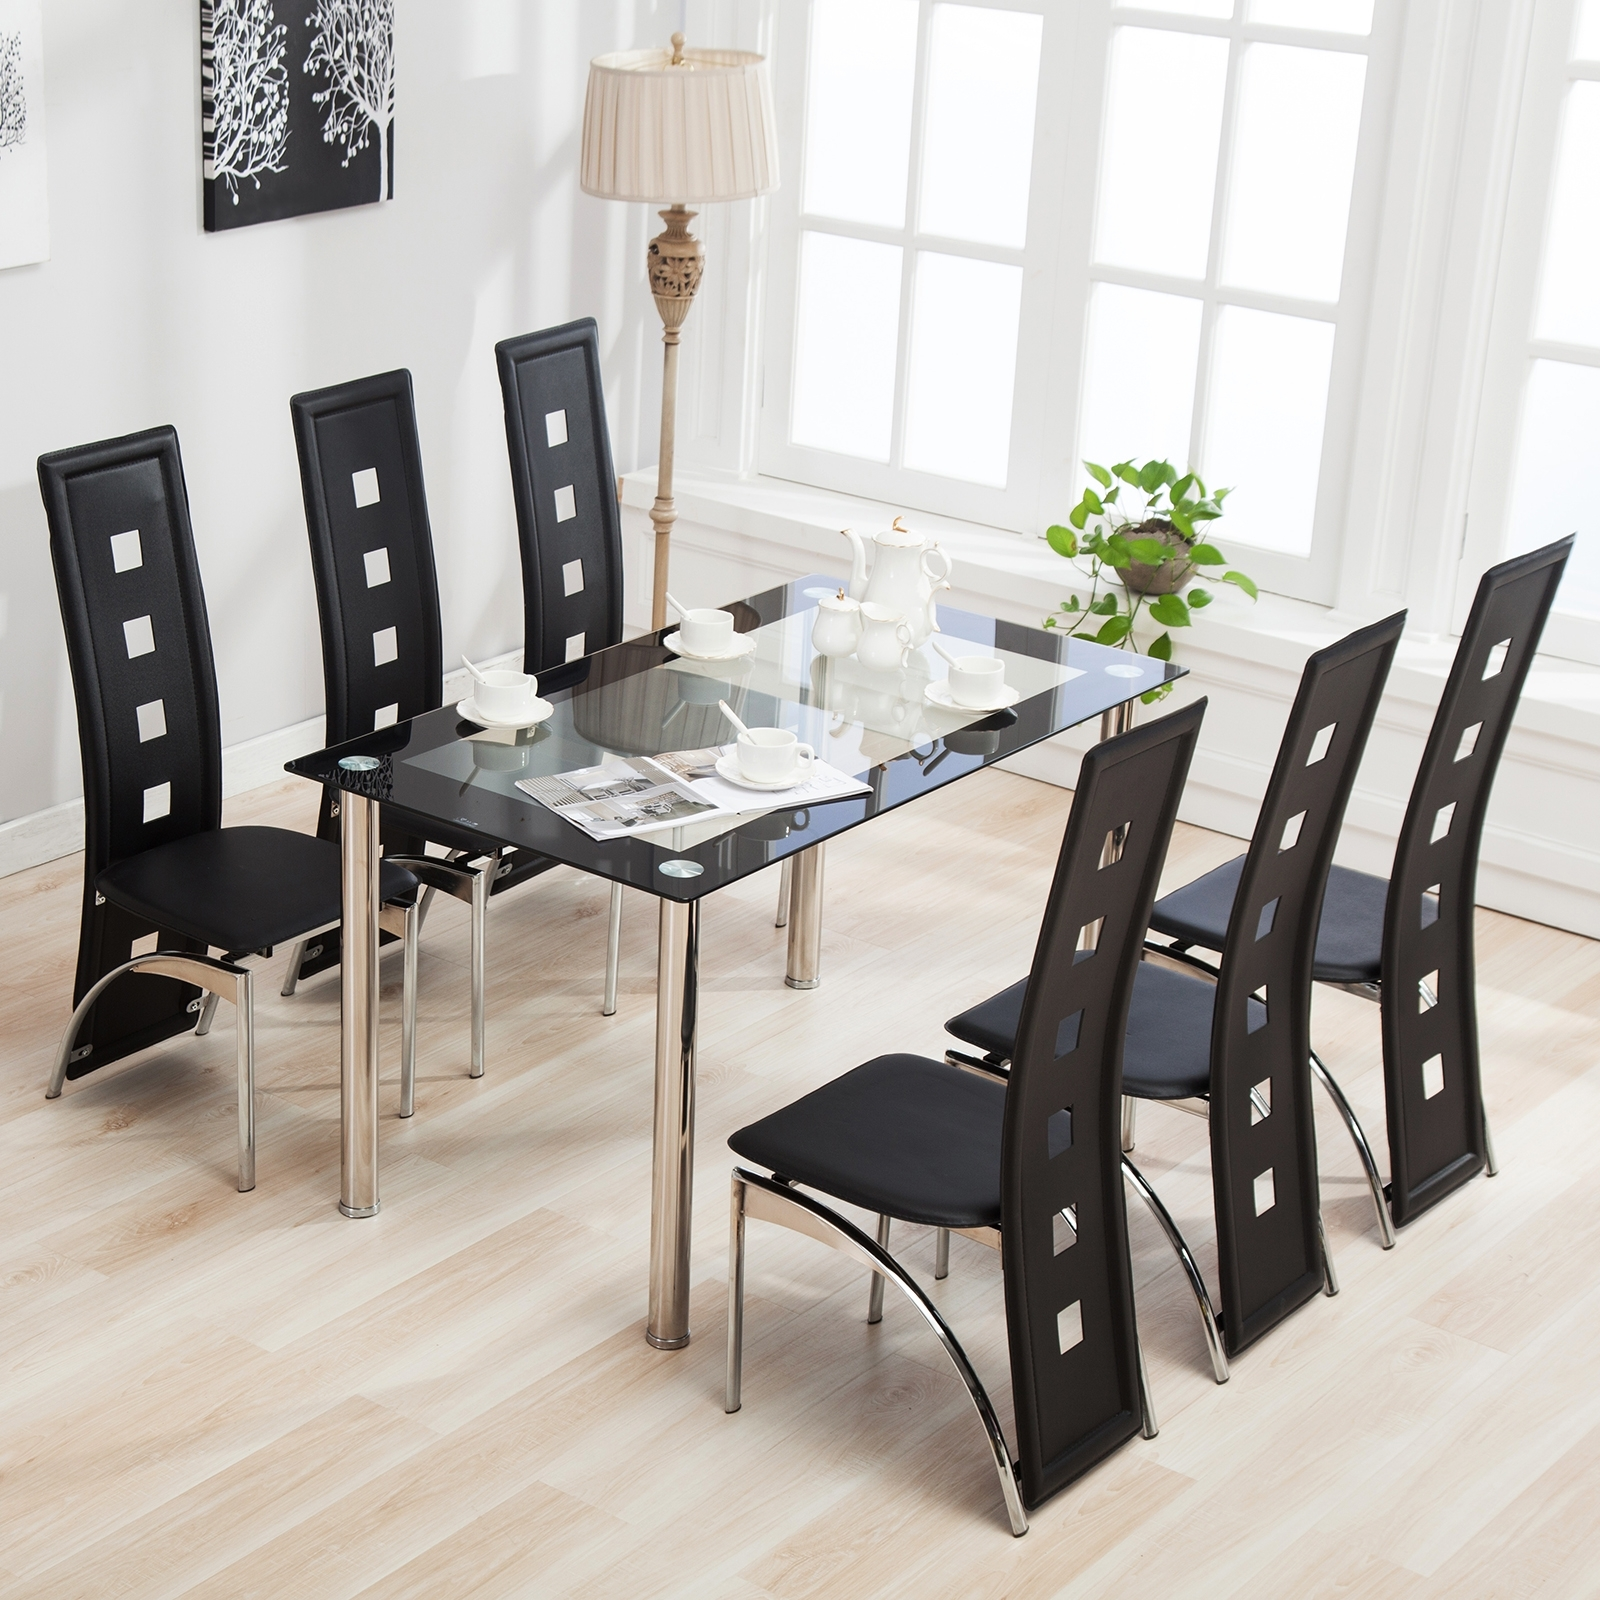 Mecor 7Pcs Dining Table Set 6 Chairs Glass Metal Kitchen Room Within 2018 6 Chairs And Dining Tables (View 15 of 25)